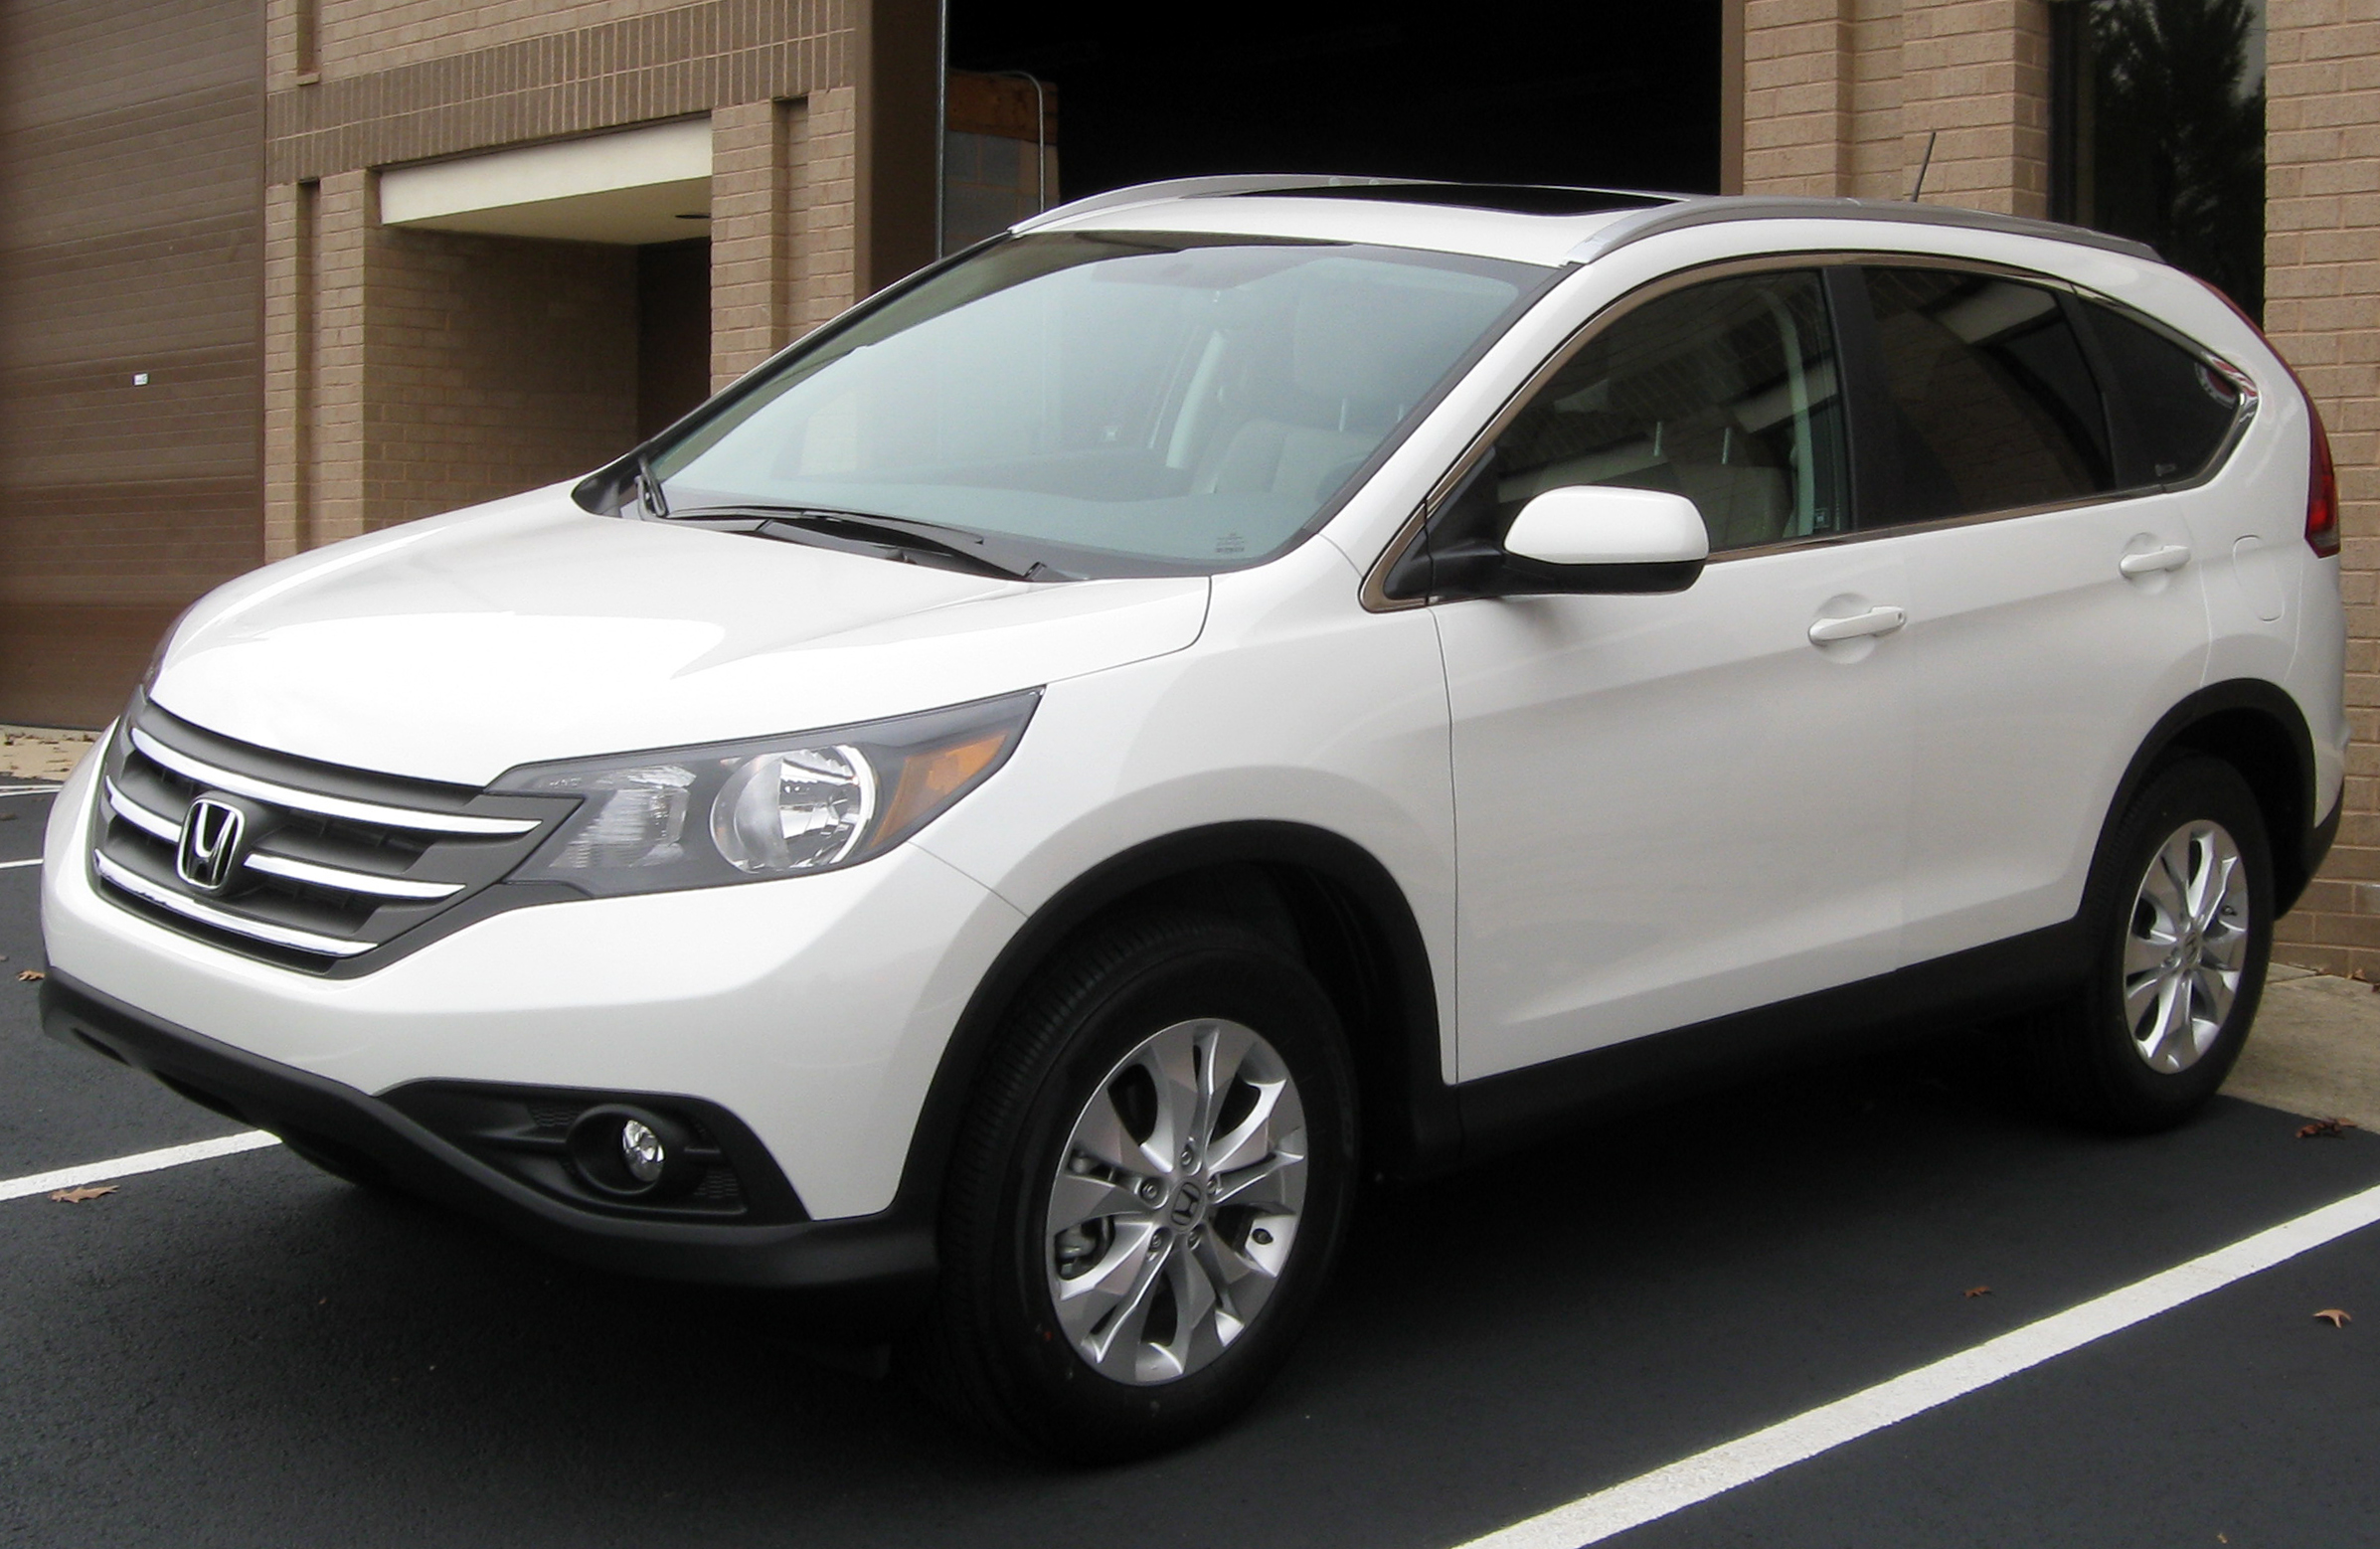 2011 Honda Cr-v iv - pictures, information and specs ...